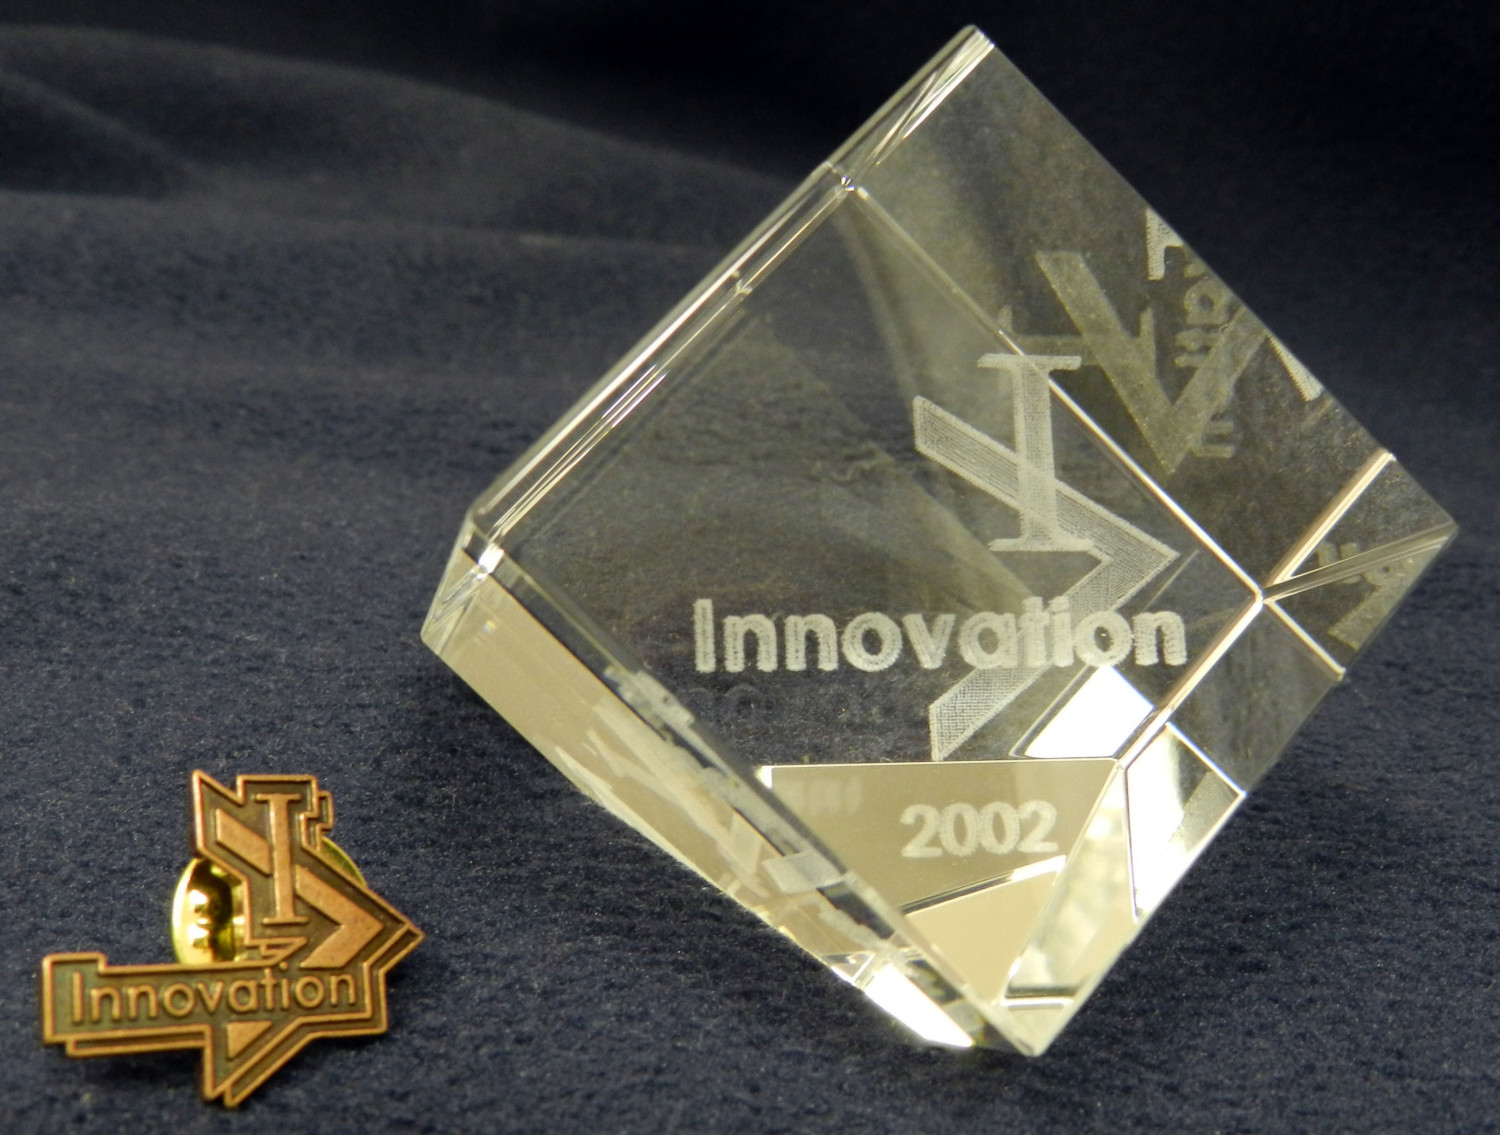 Chairman's Award for Innovation 2002